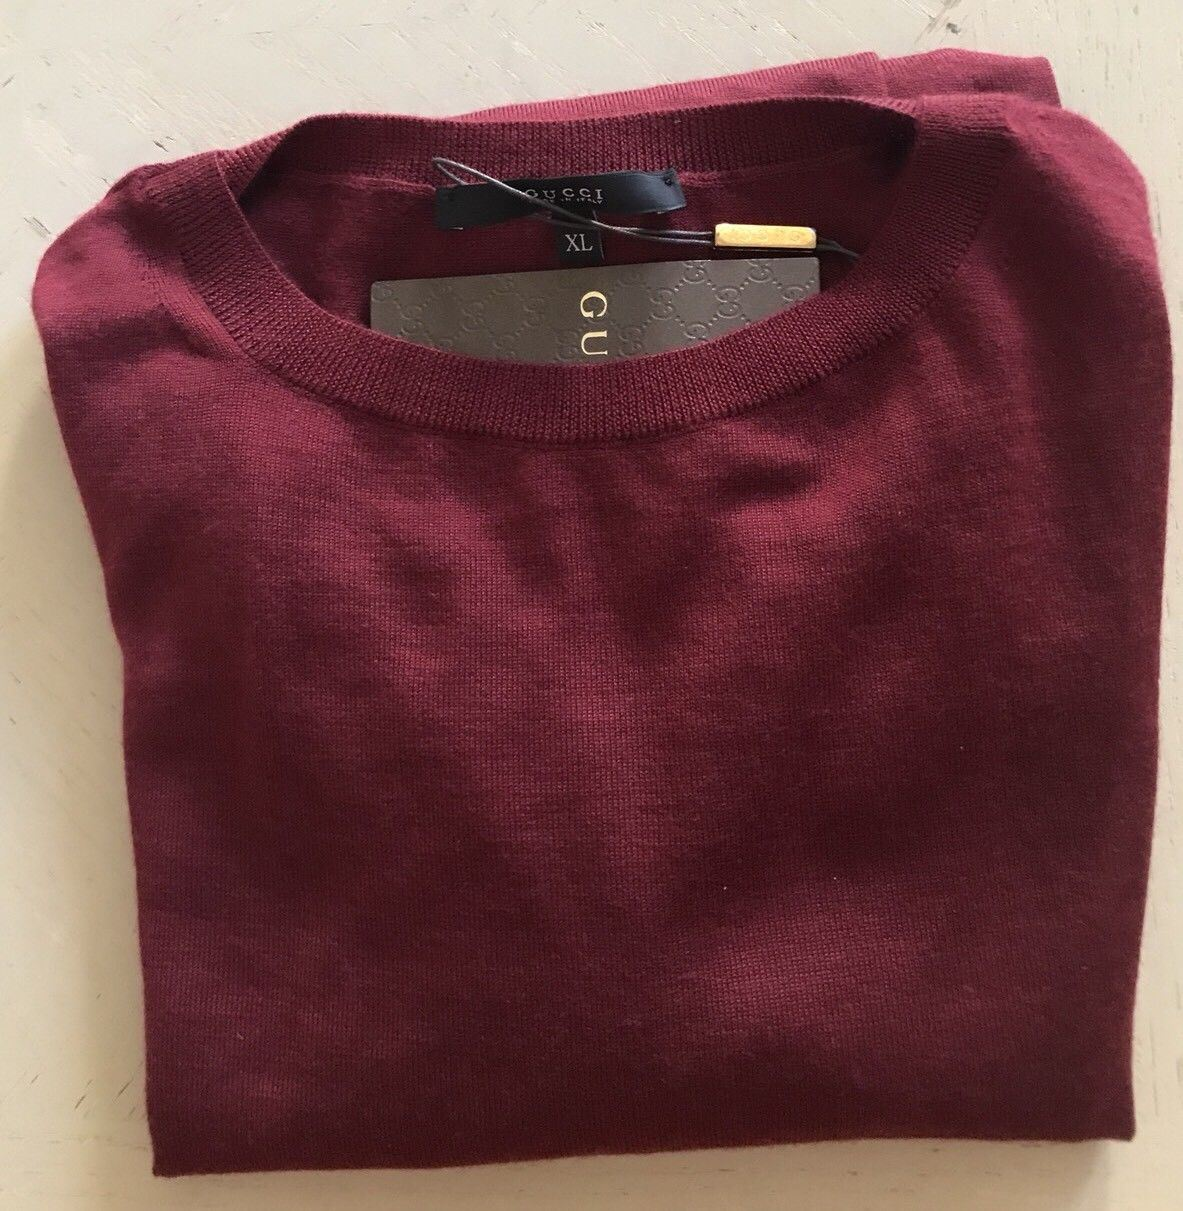 New $980 Gucci Mens Crewneck Cashmere W/GG EMB Sweater Burgundy XL Italy - BAYSUPERSTORE